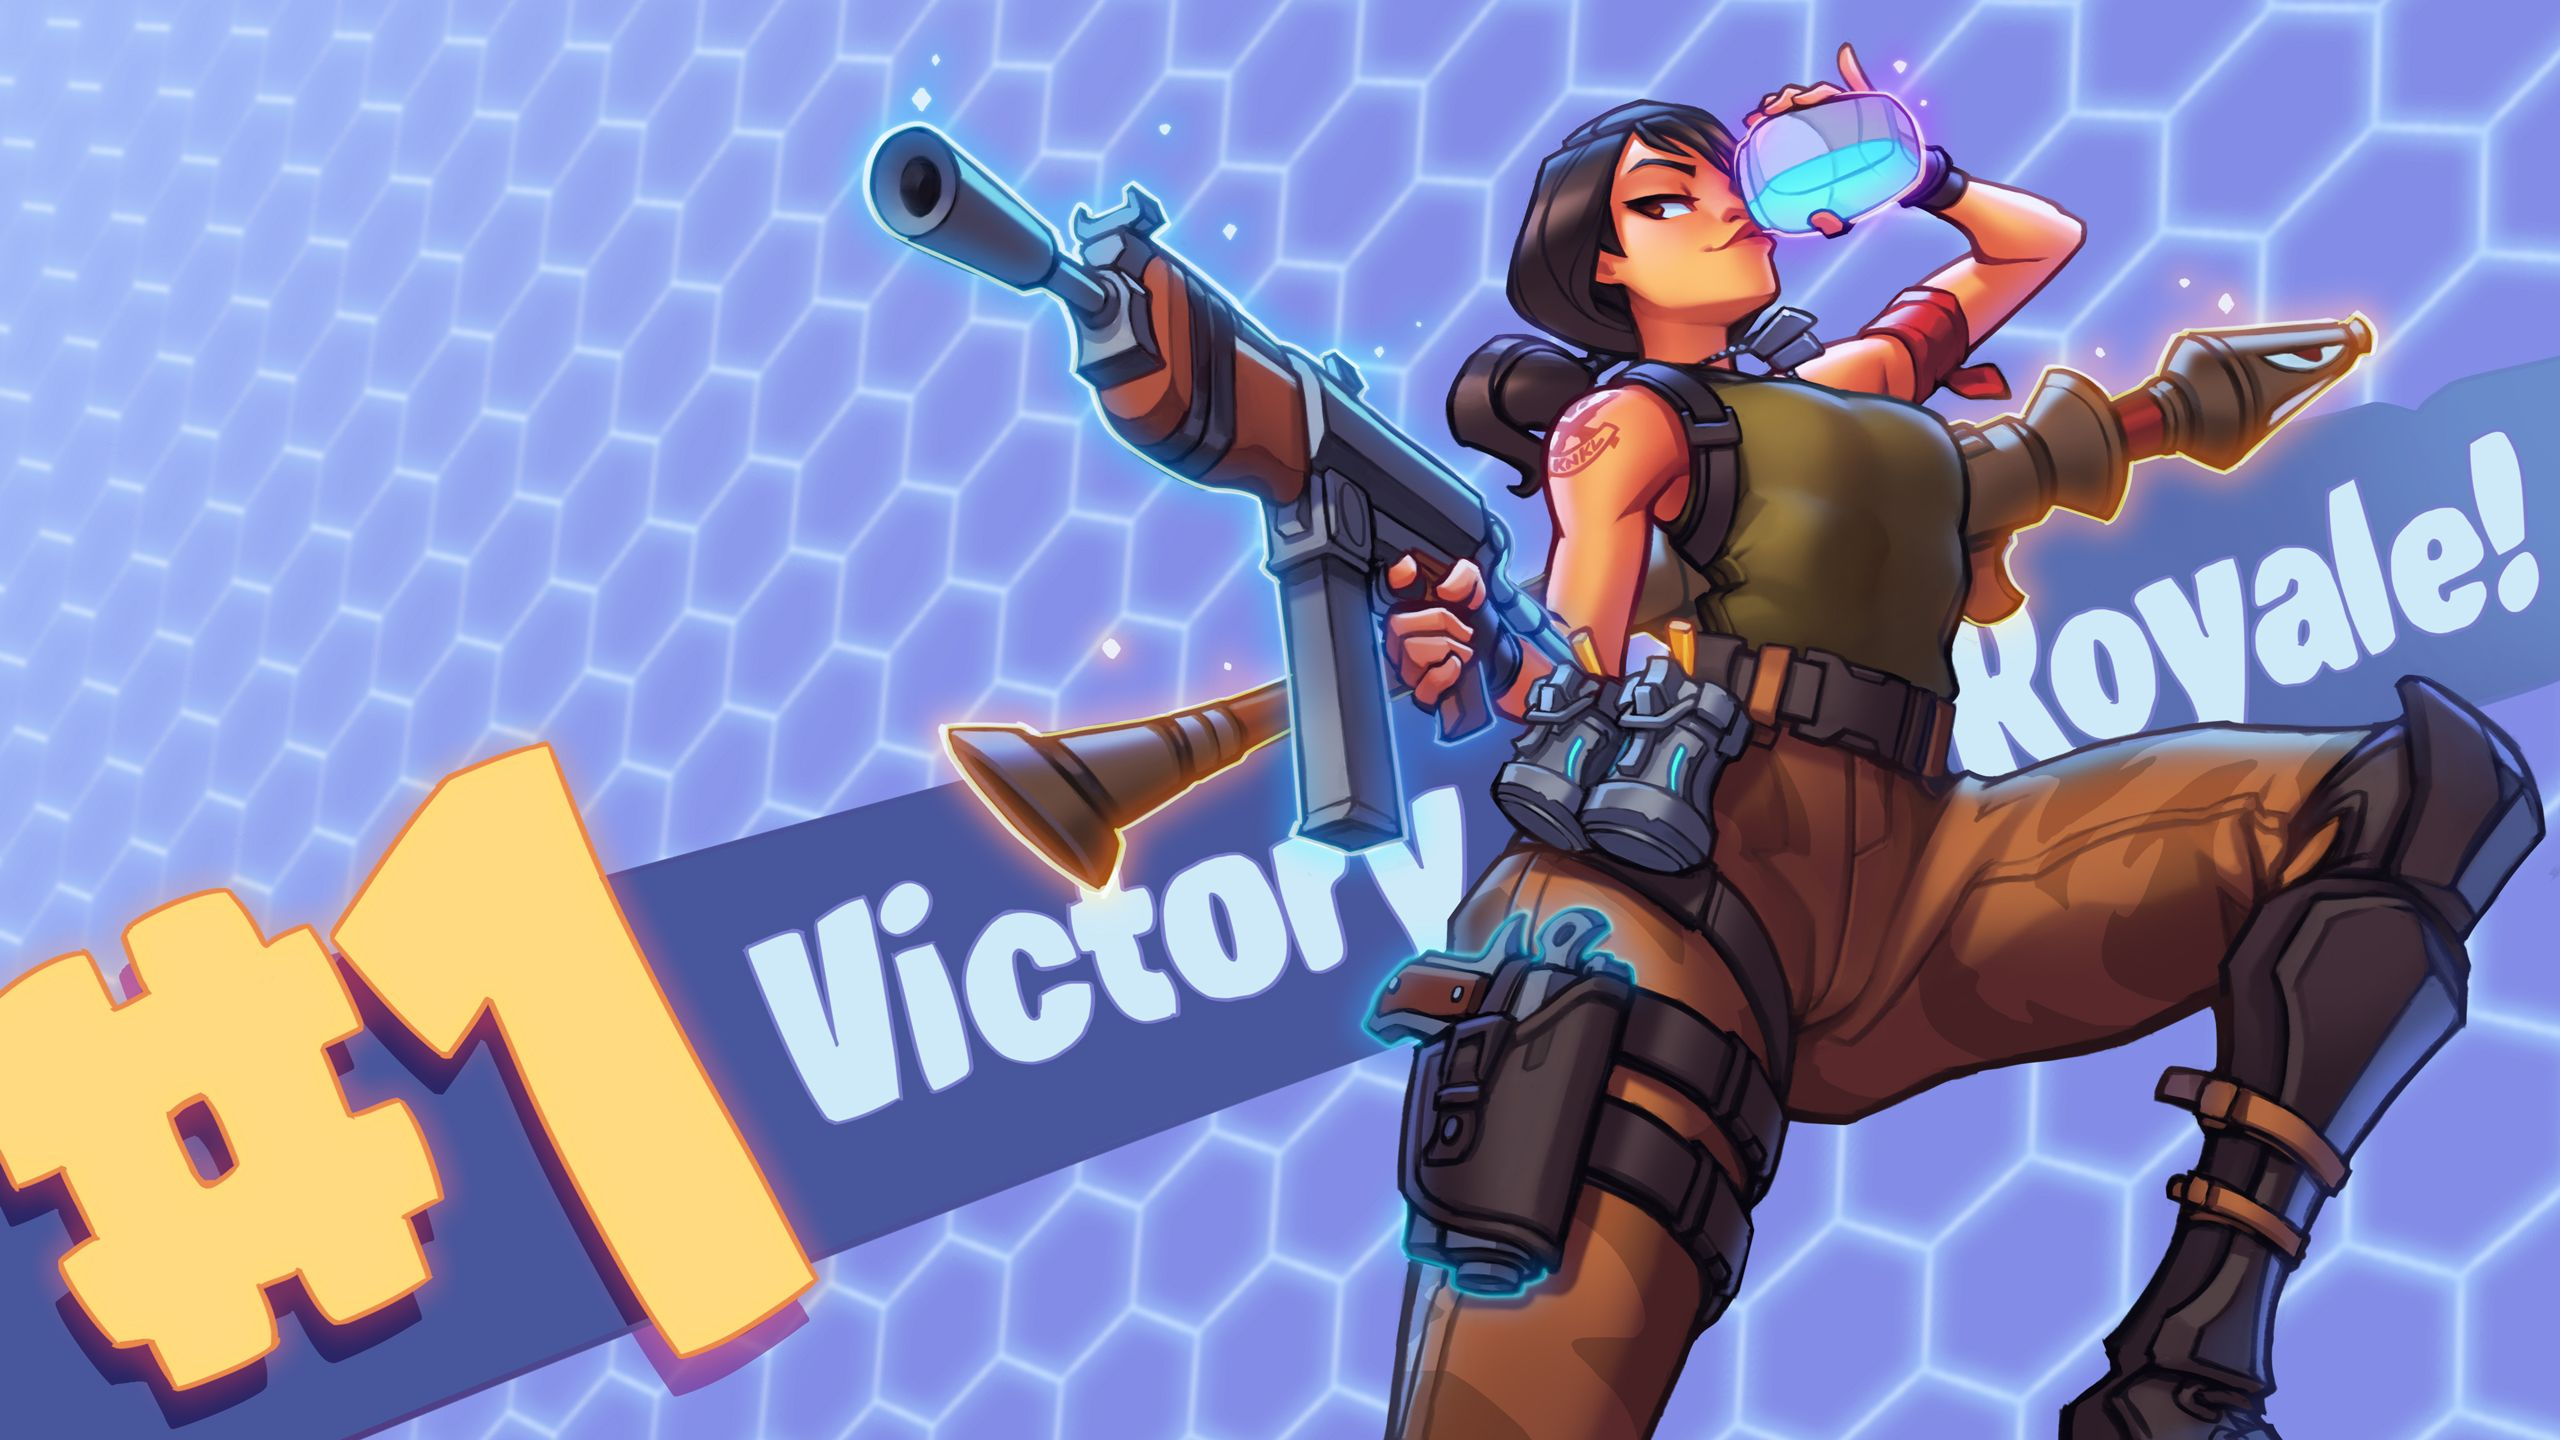 Fortnite Victory Royale Logo Wallpapers Top Free Fortnite Victory Royale Logo Backgrounds Wallpaperaccess